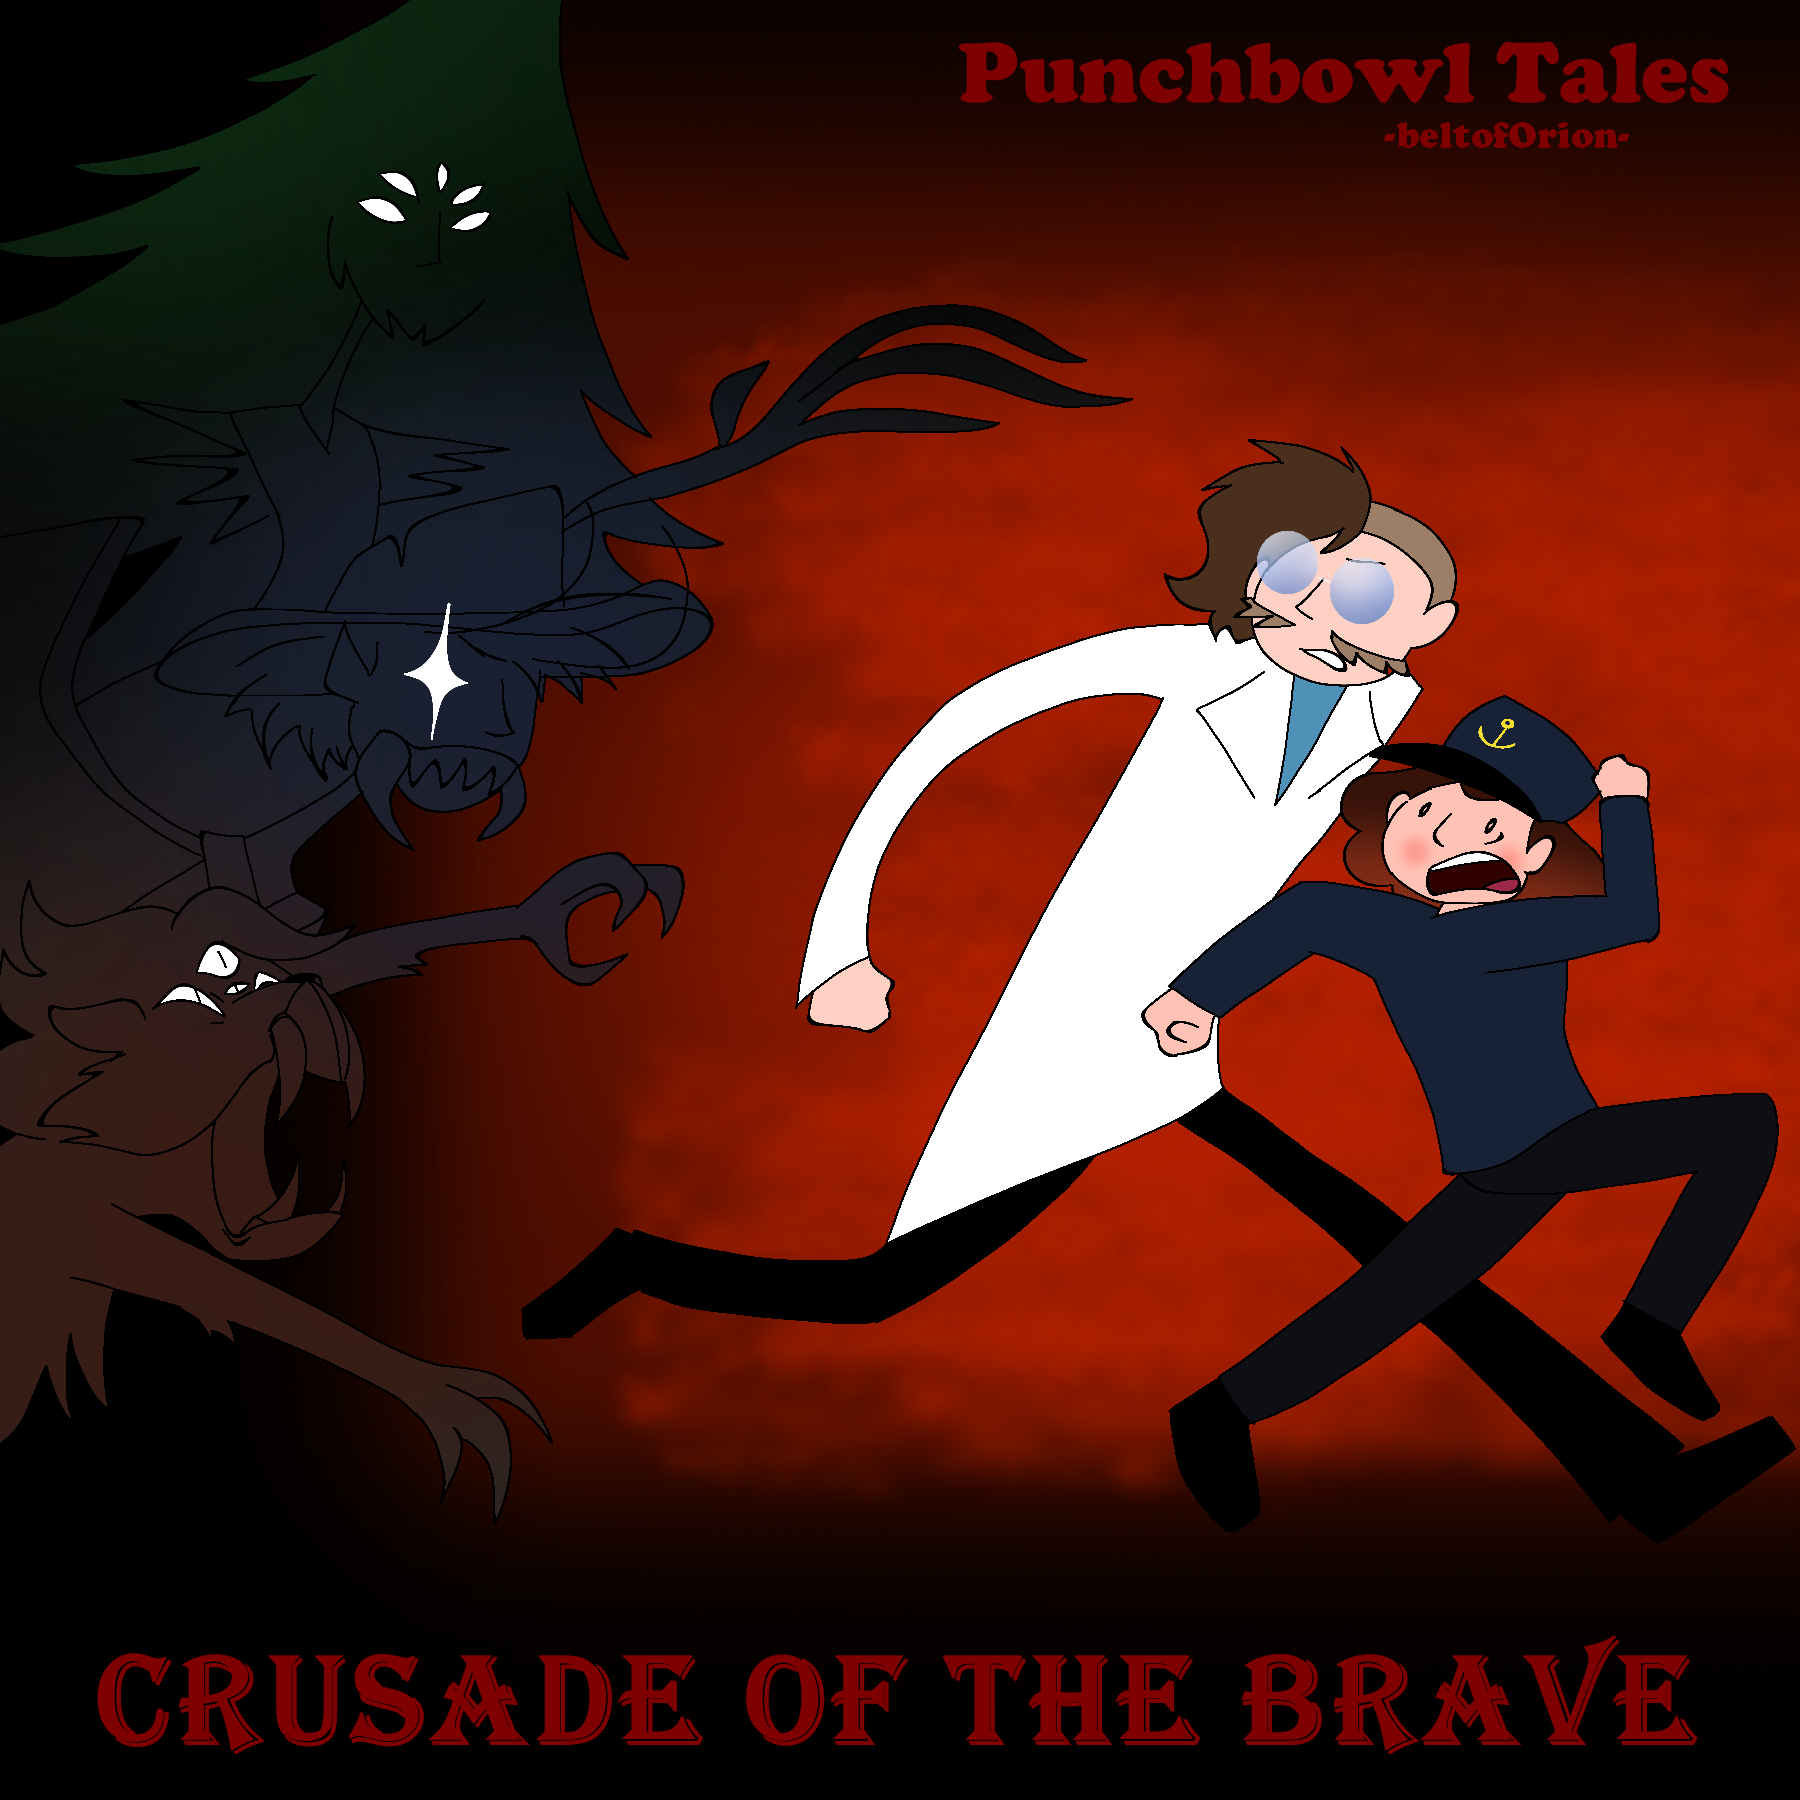 Crusade of the Brave